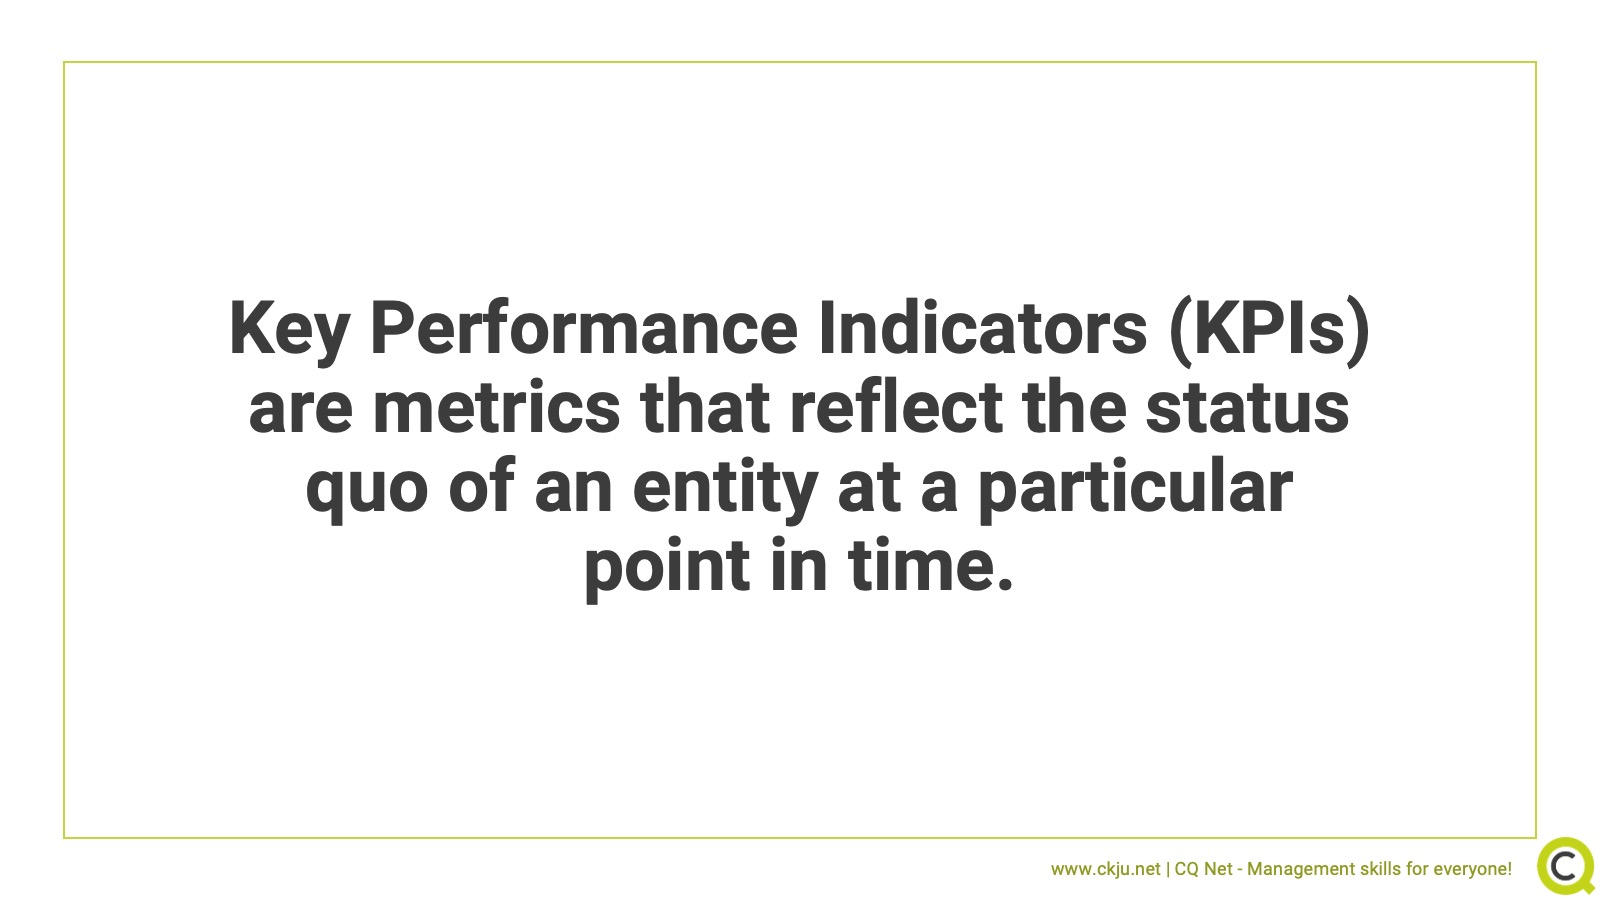 Key Performance Indicators are metrics that measure the status quo of entities at particular points in time